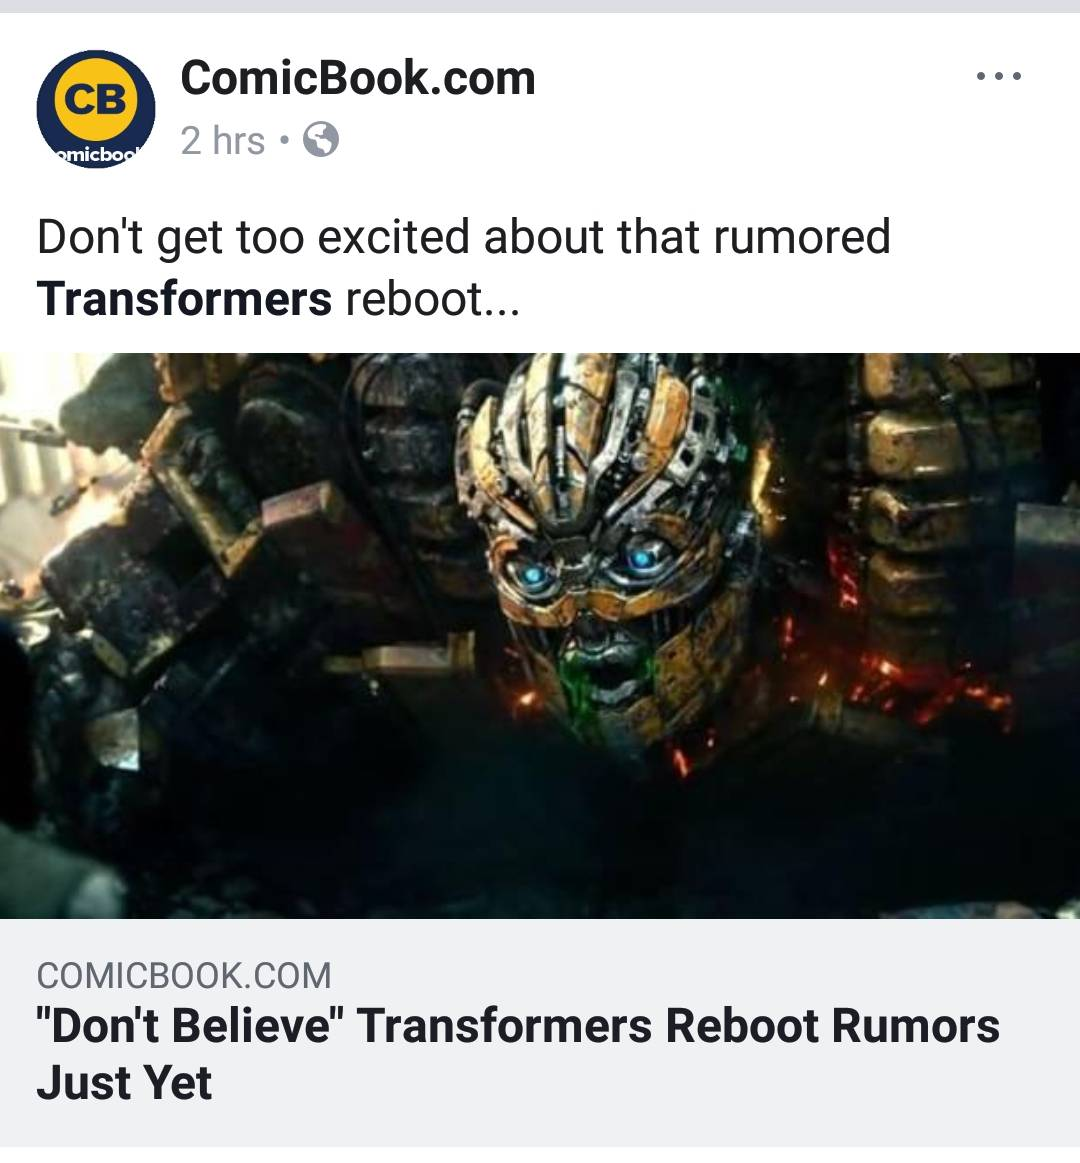 Transformers Series to be Rebooted  Transformers 6 literally